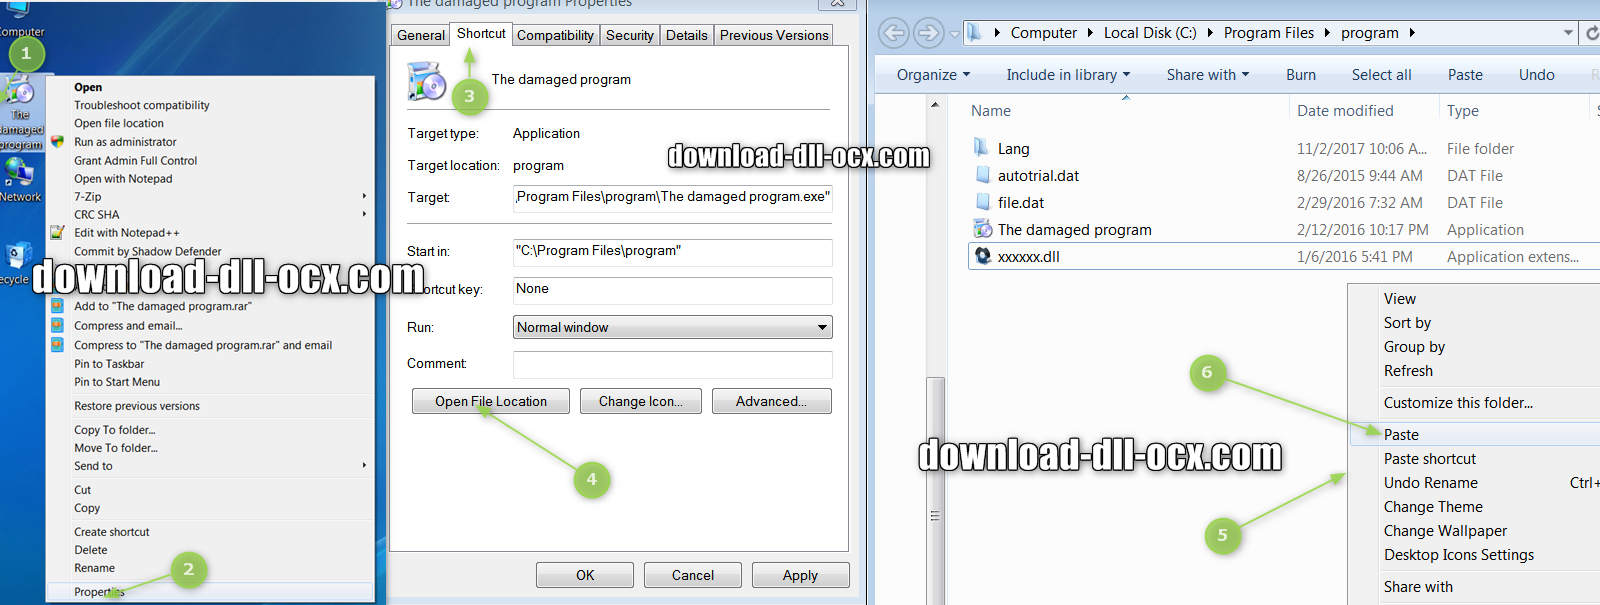 how to install gpupeopssoft.dll file? for fix missing